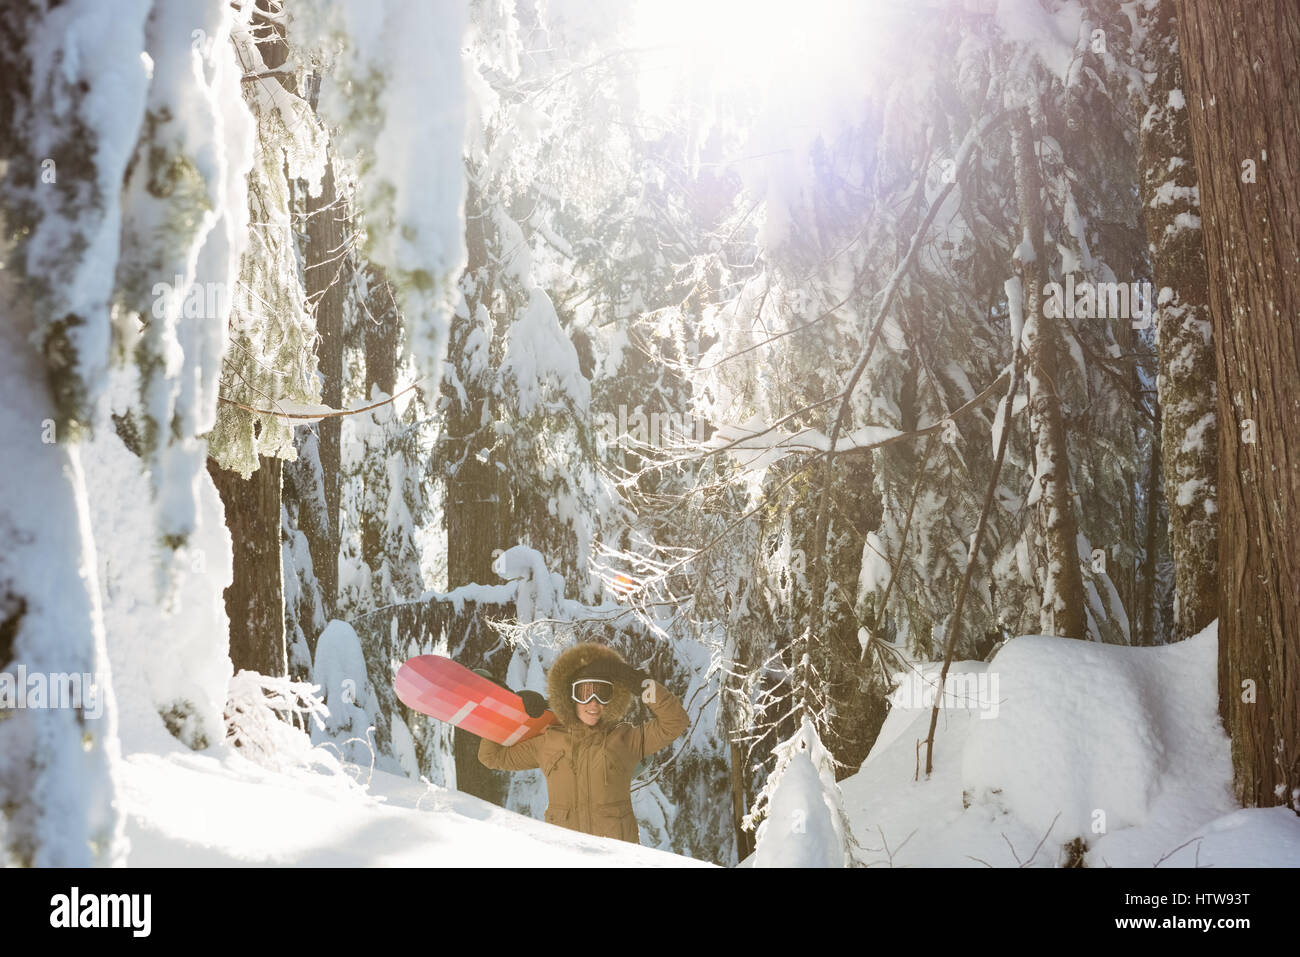 Woman with snowboard walking on snowy mountain - Stock Image